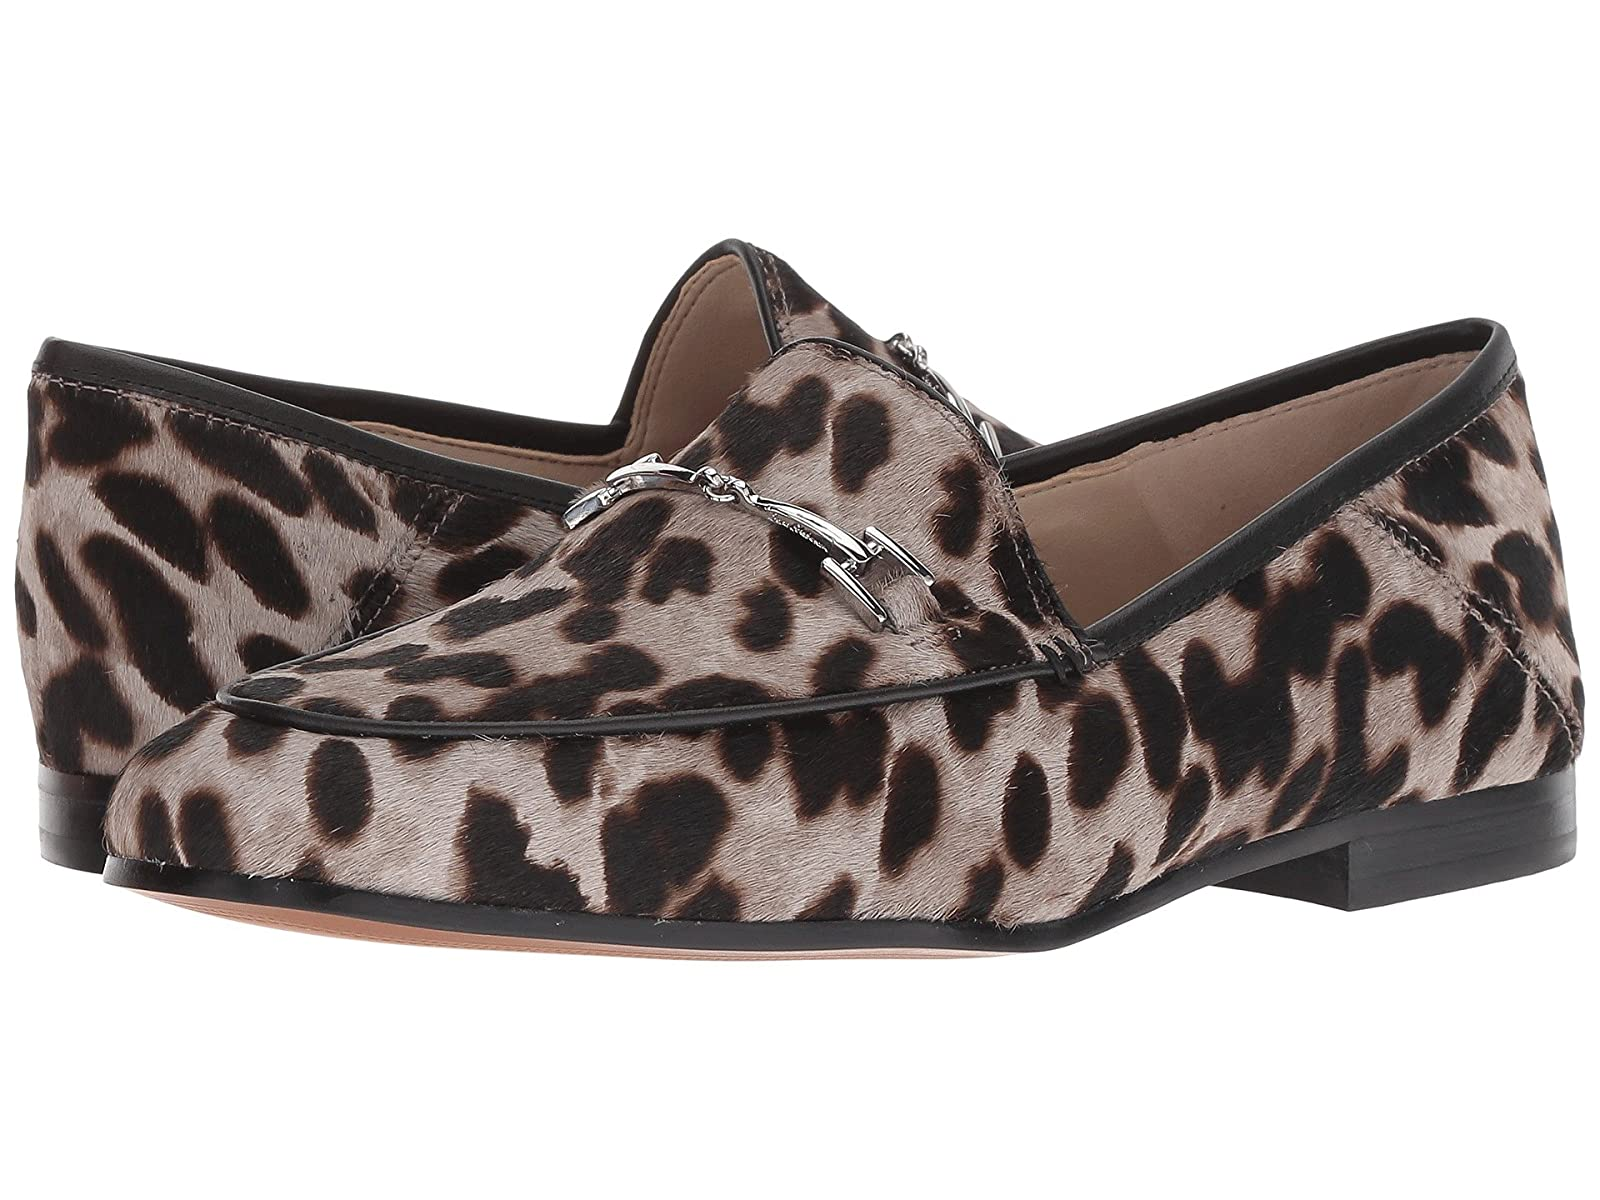 Sam Edelman LoraineAtmospheric grades have affordable shoes